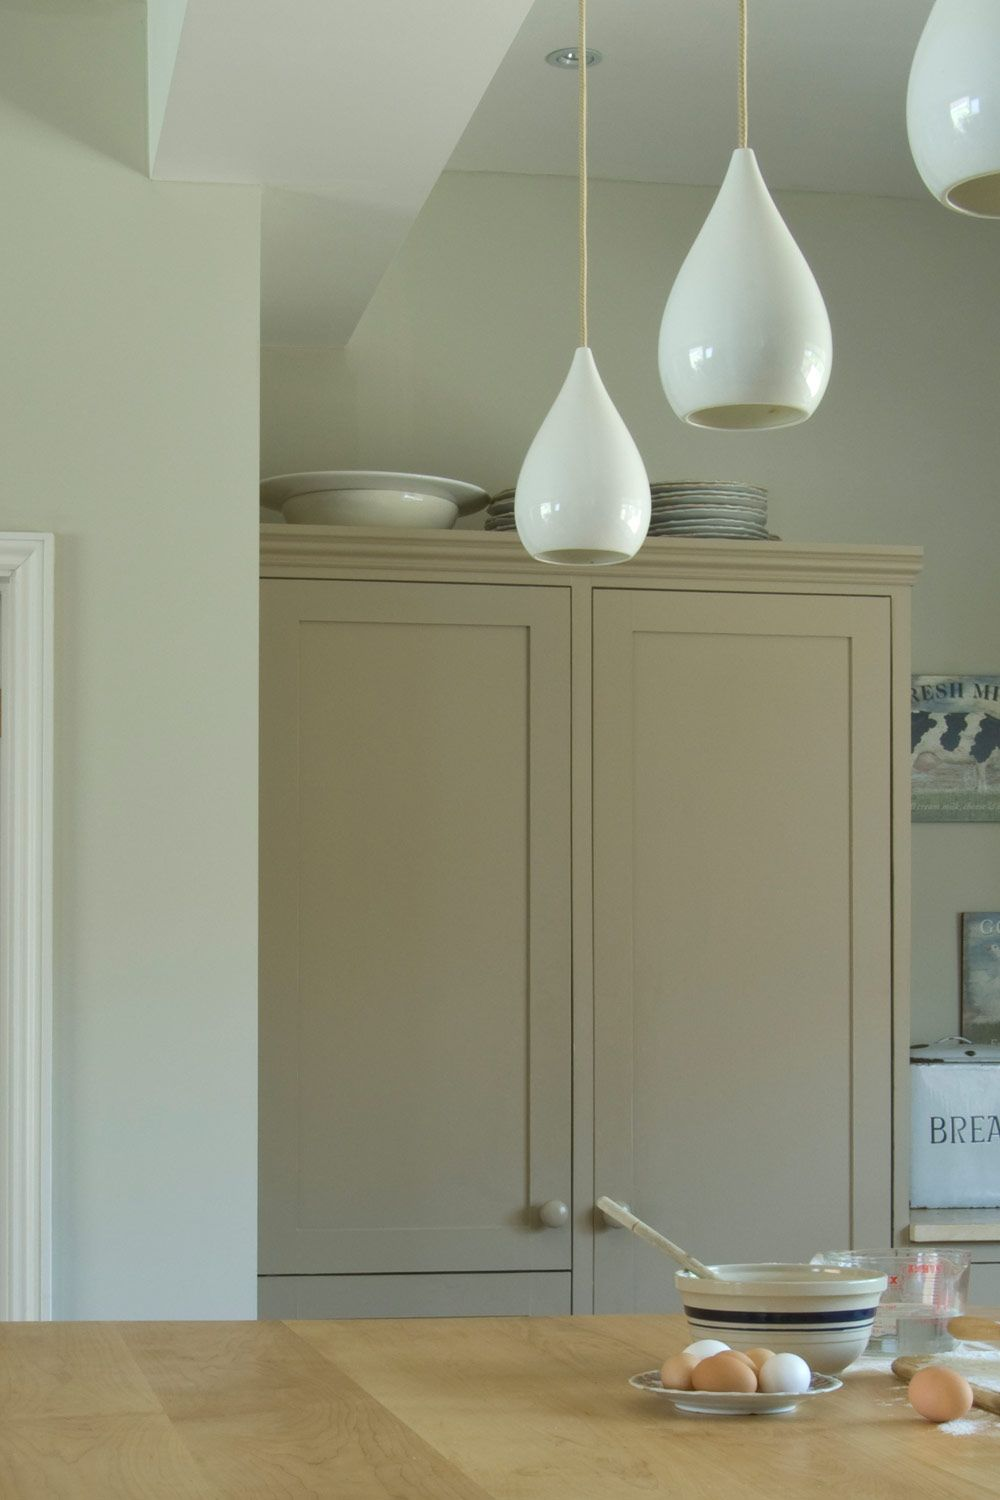 Best Farrow And Ball Paint Cabinets In Farrow Ball London 400 x 300